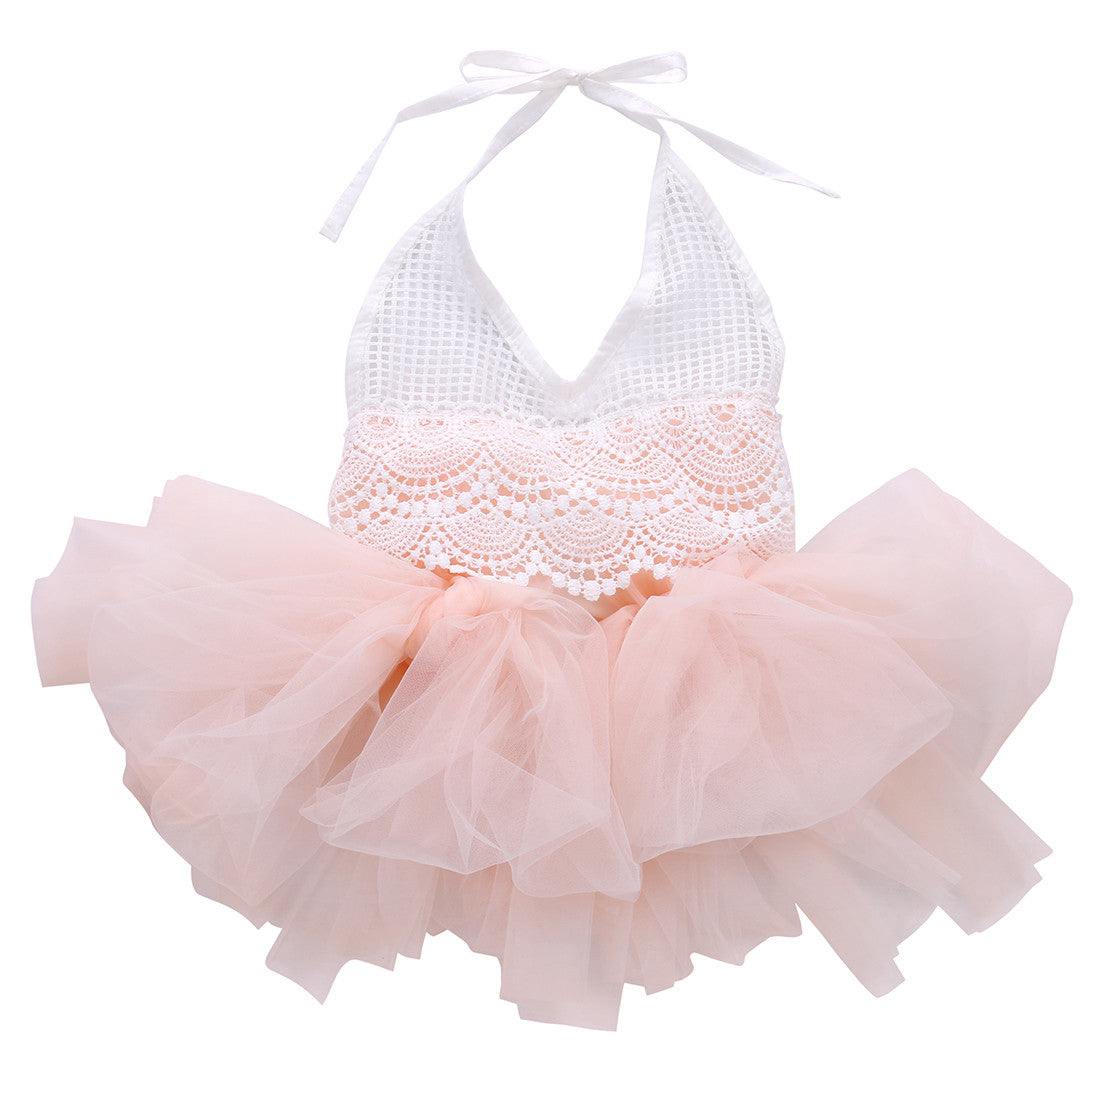 Baby Fashion Romper Lace Tulle Girls Jumpsuit Infant Kids Overall